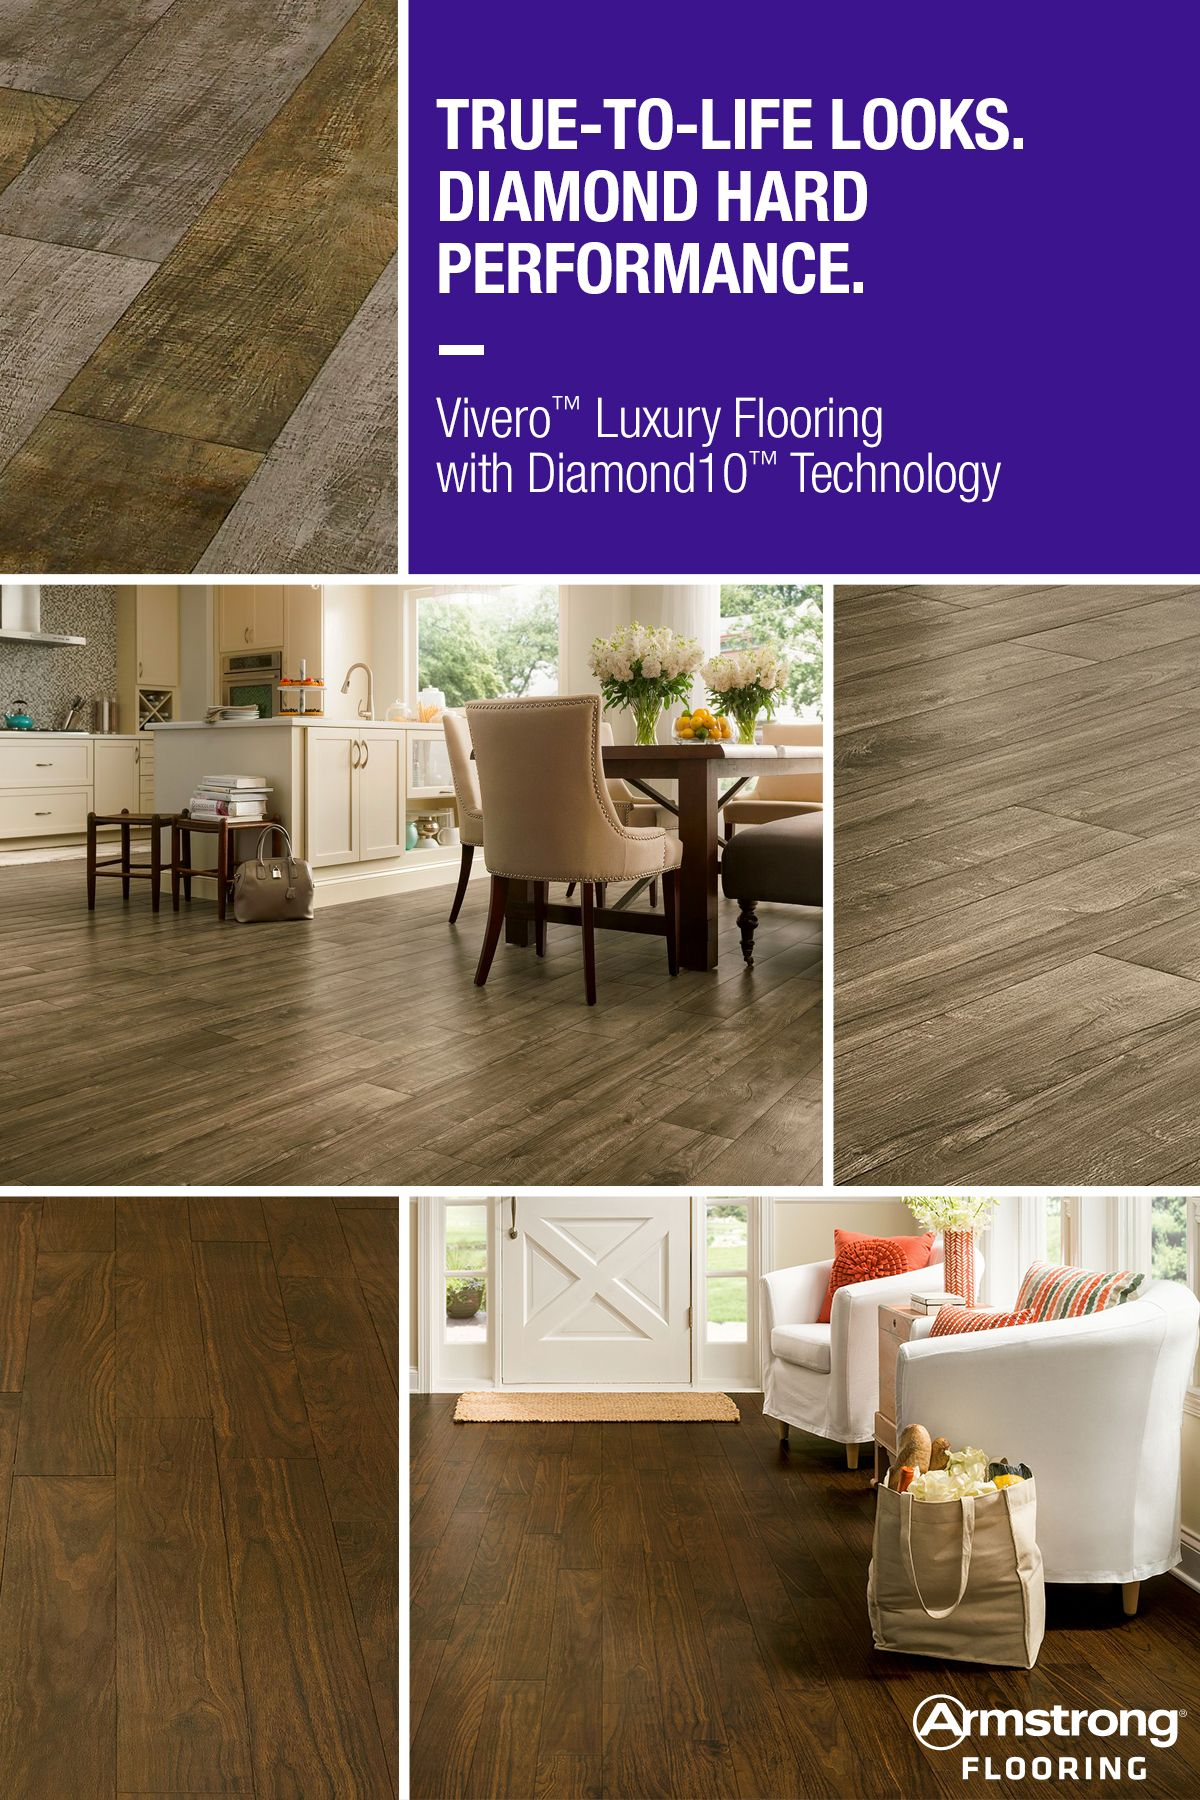 New vivero luxury flooring offers beautiful looks combined with